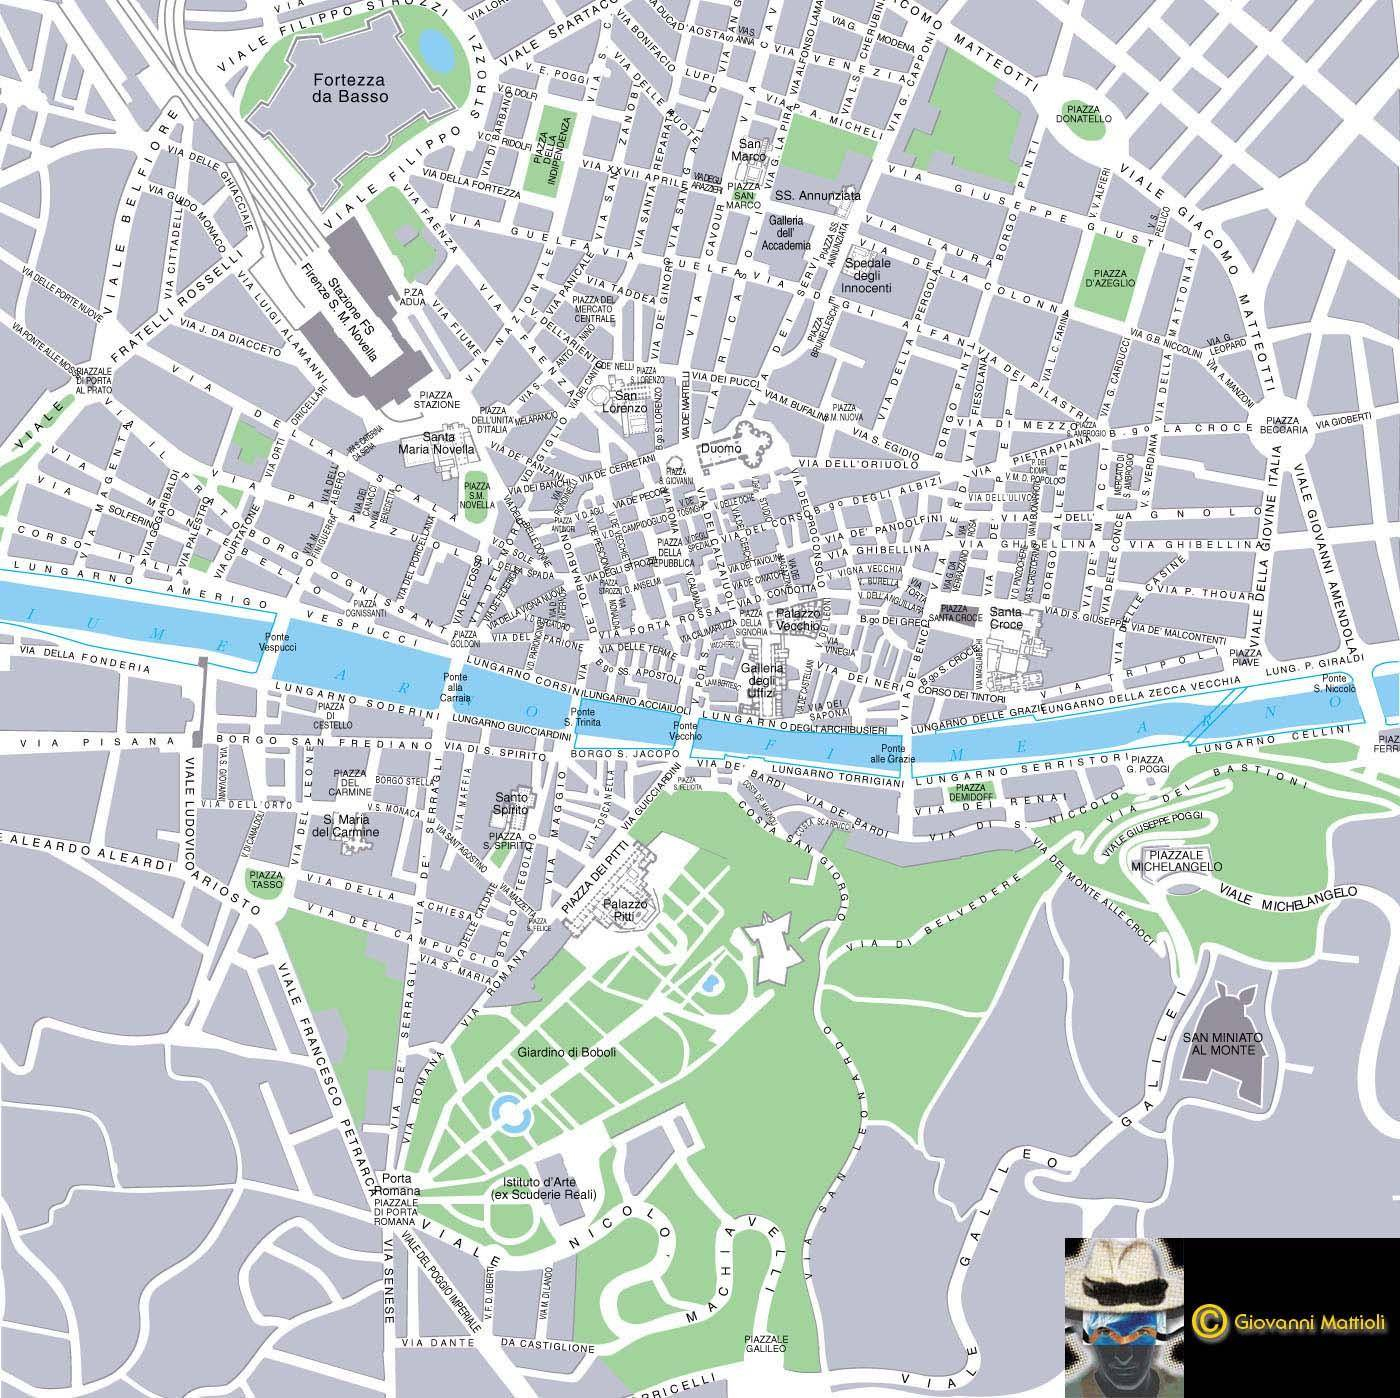 Large Florence Maps For Free Download And Print | High-Resolution - Printable Street Map Of Sorrento Italy